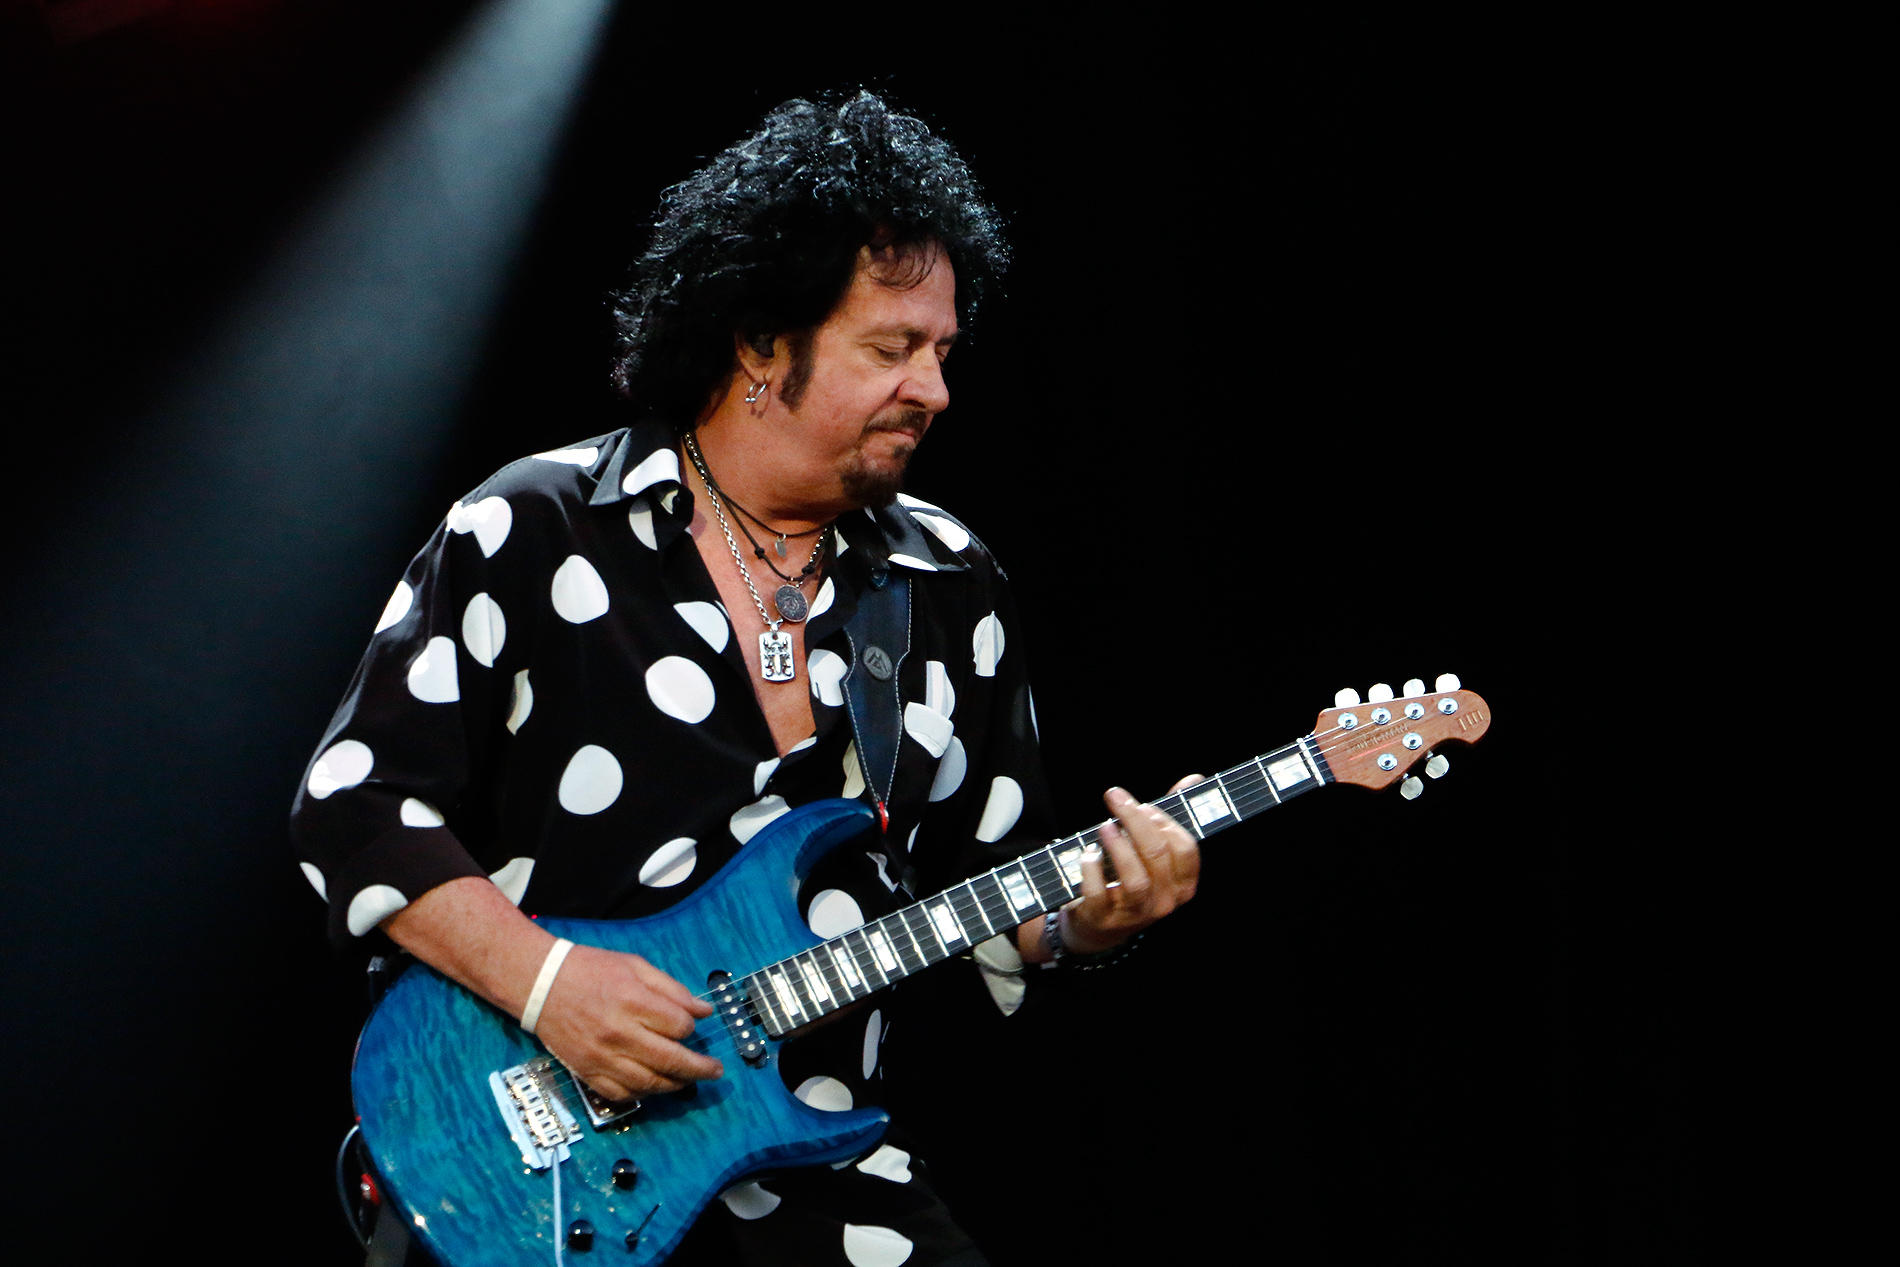 Lukather, 61, still practices his playing daily. He aims to refine his skills and describes himself as a student always wanting to learn more. In Pori, his riffs and solos were rock-solid. Picture: Tony Öhberg for Finland Today